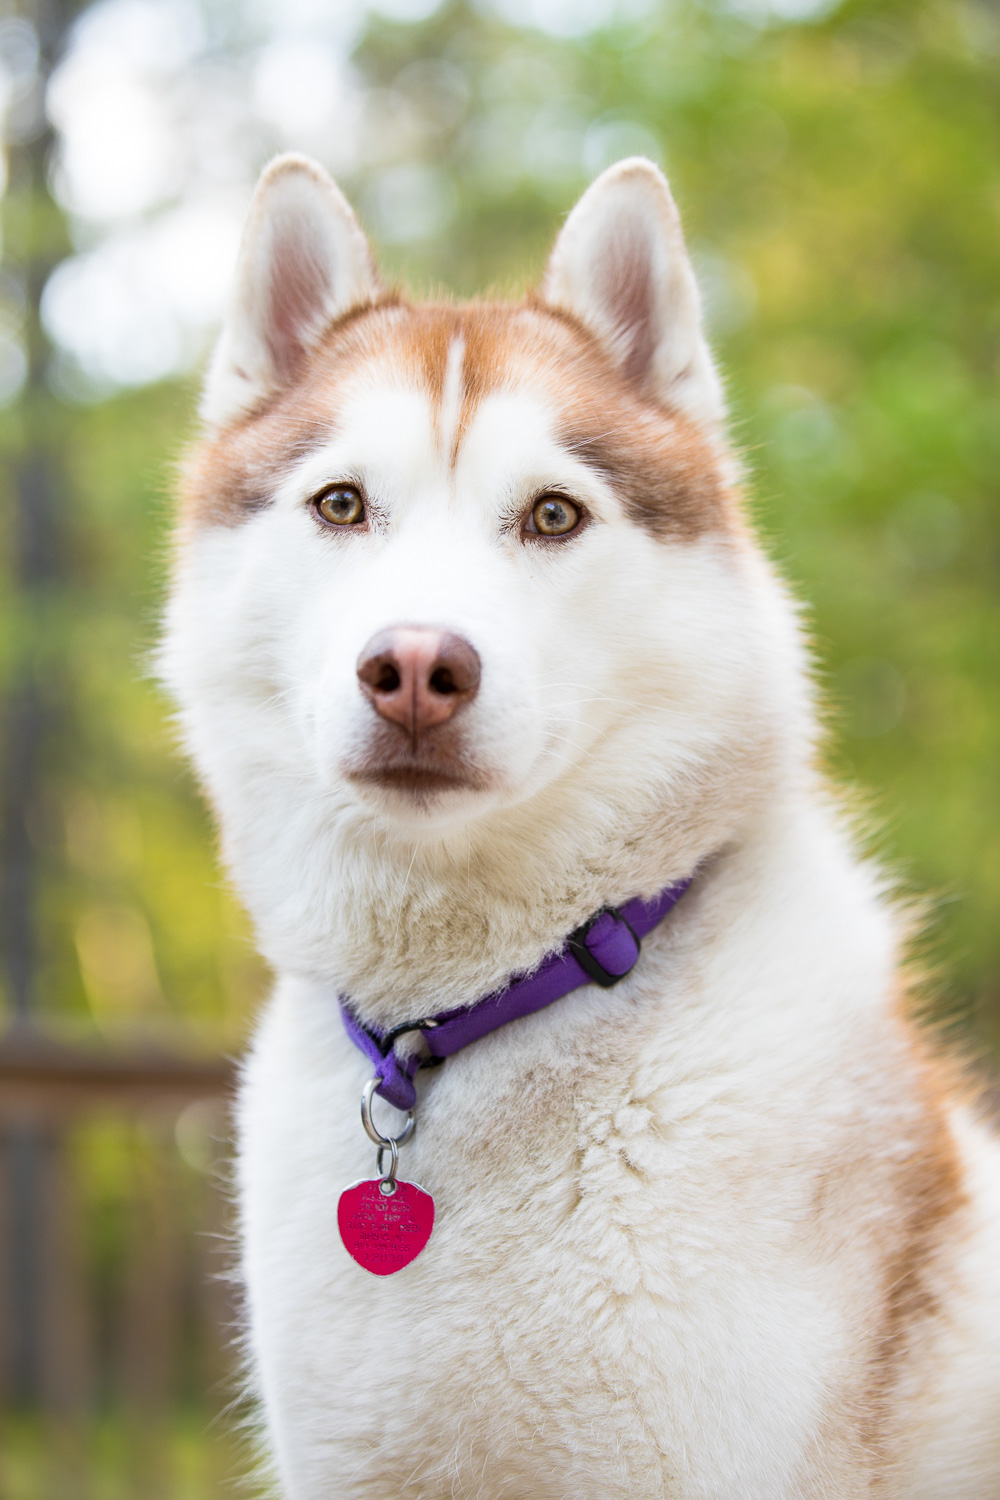 Ryder - Siberian Husky. Spoiled pup. Special talents include giving you dirty looks if you're not sharing your Bojangles with him. Secret weapon: fuzzy cuddles in a tent on a mountain. Bonafide weakness: FOMO.